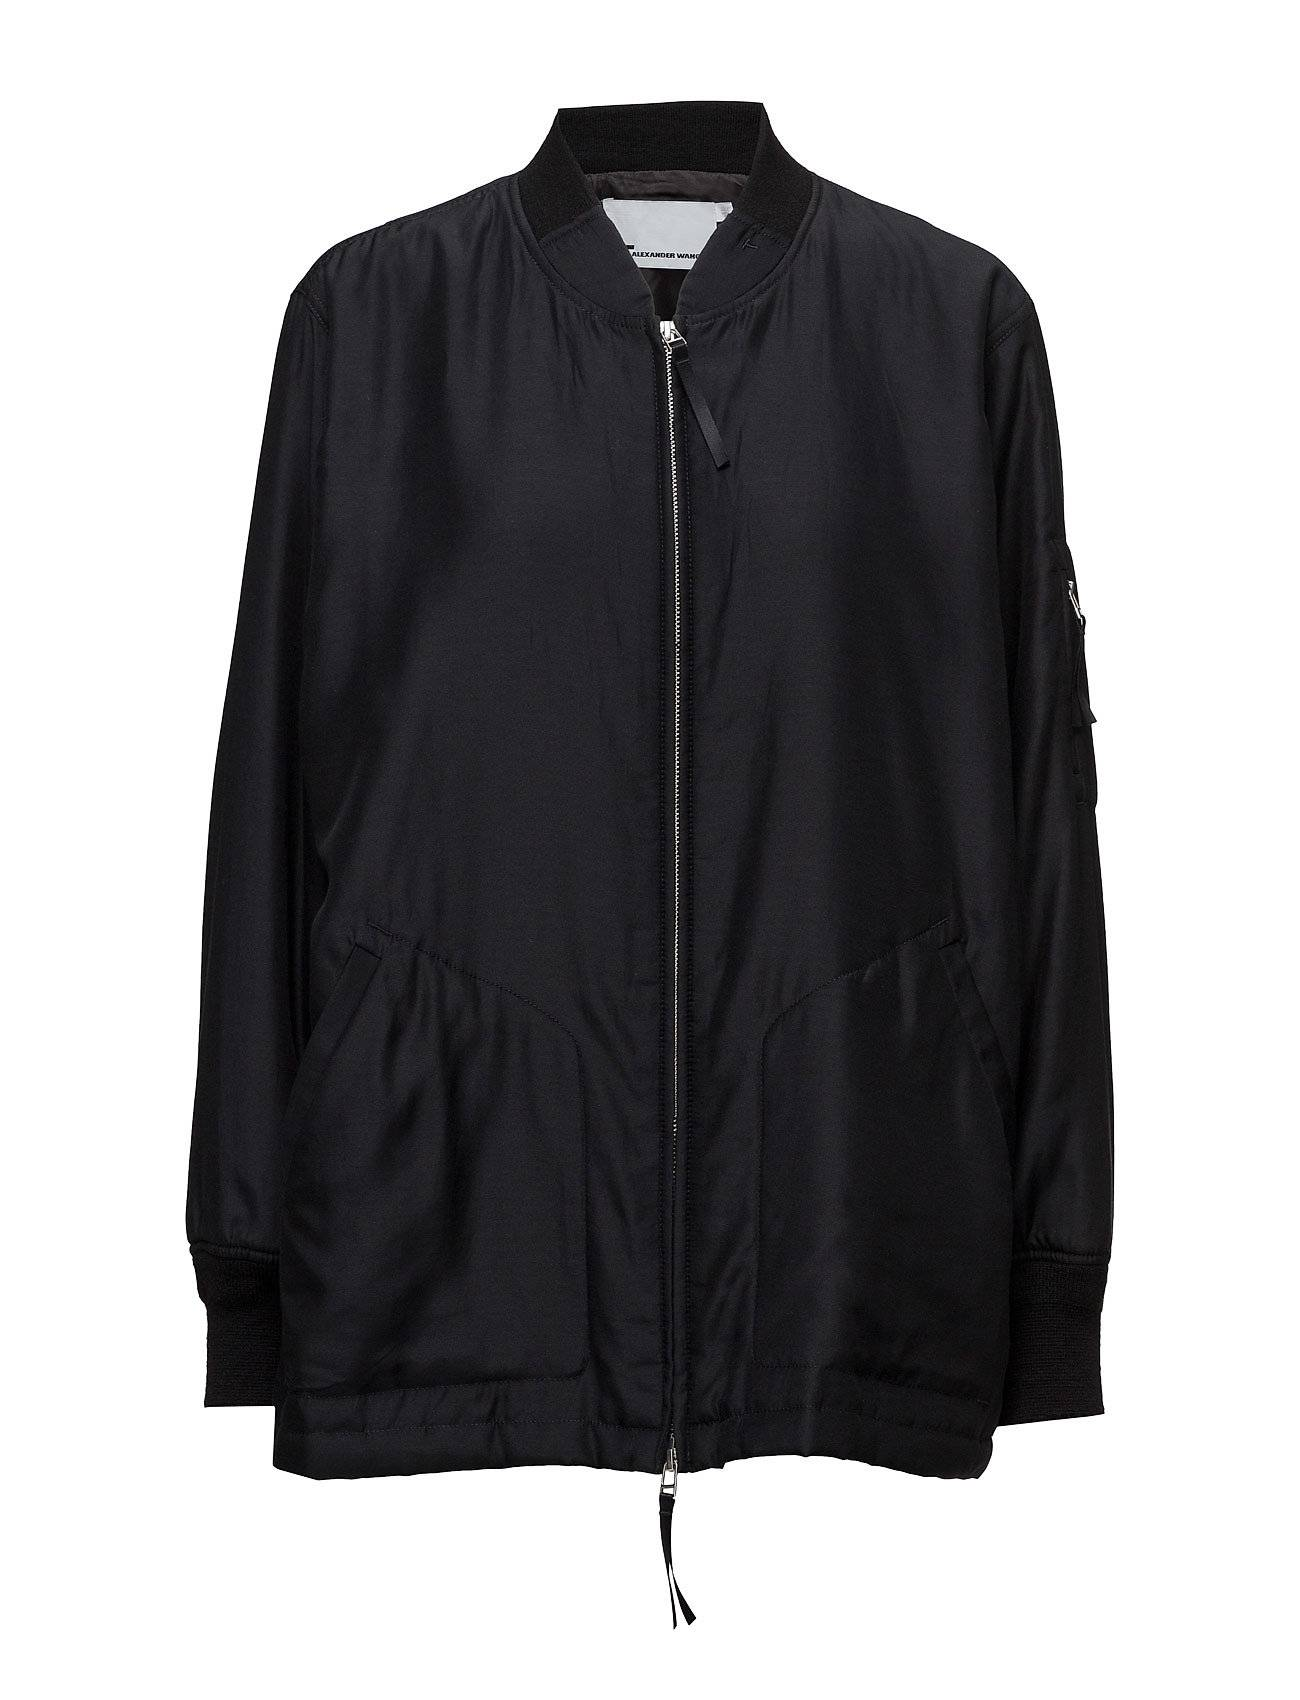 T by Alexander Wang Silk Cotton Habotai Lightly Lined Oversized Bomber